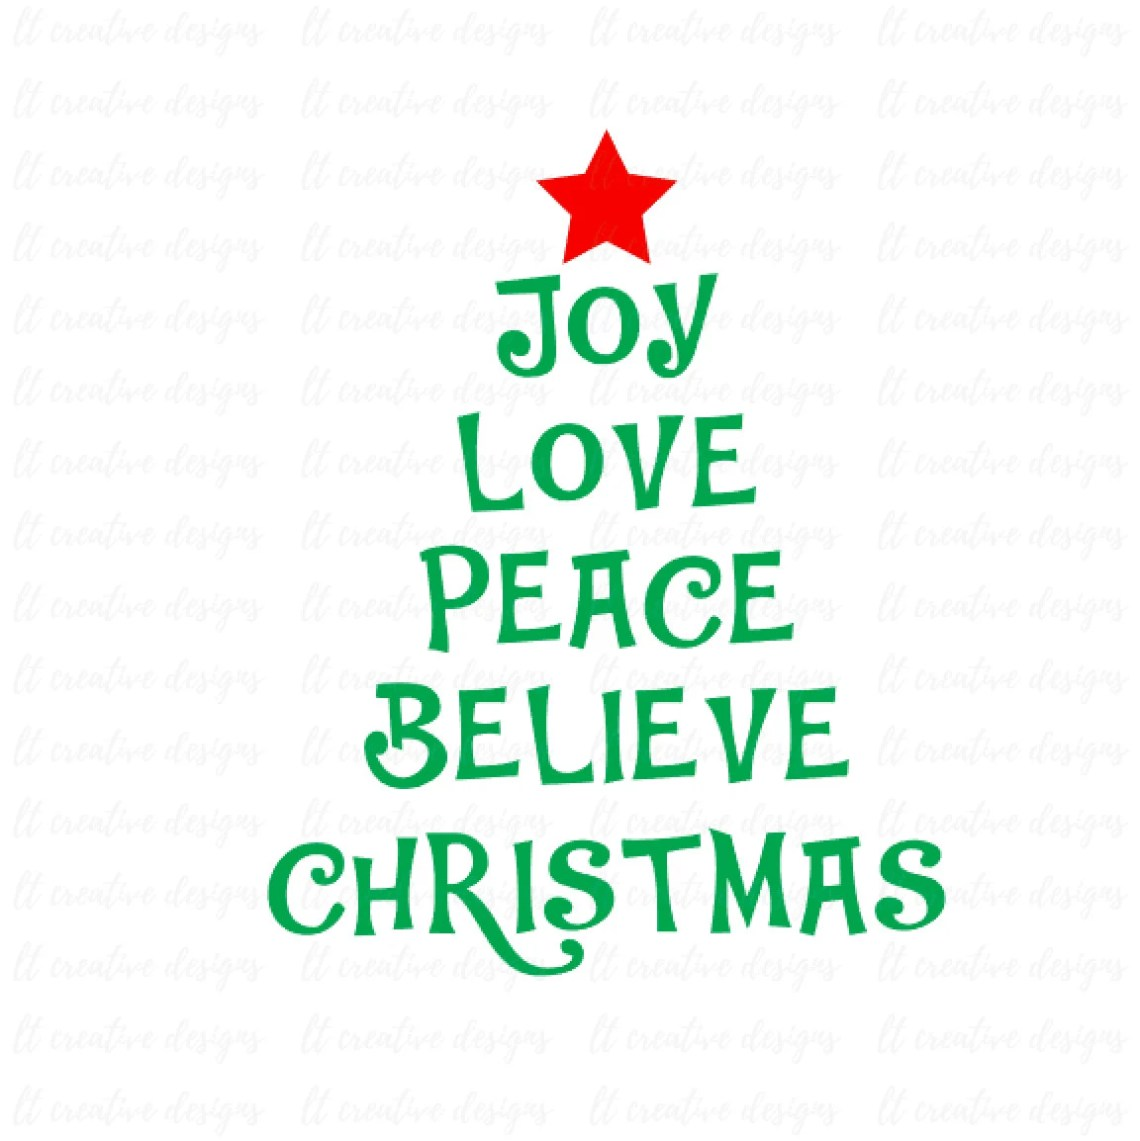 Download Joy Love Peace Believe Christmas SVG Files Christmas